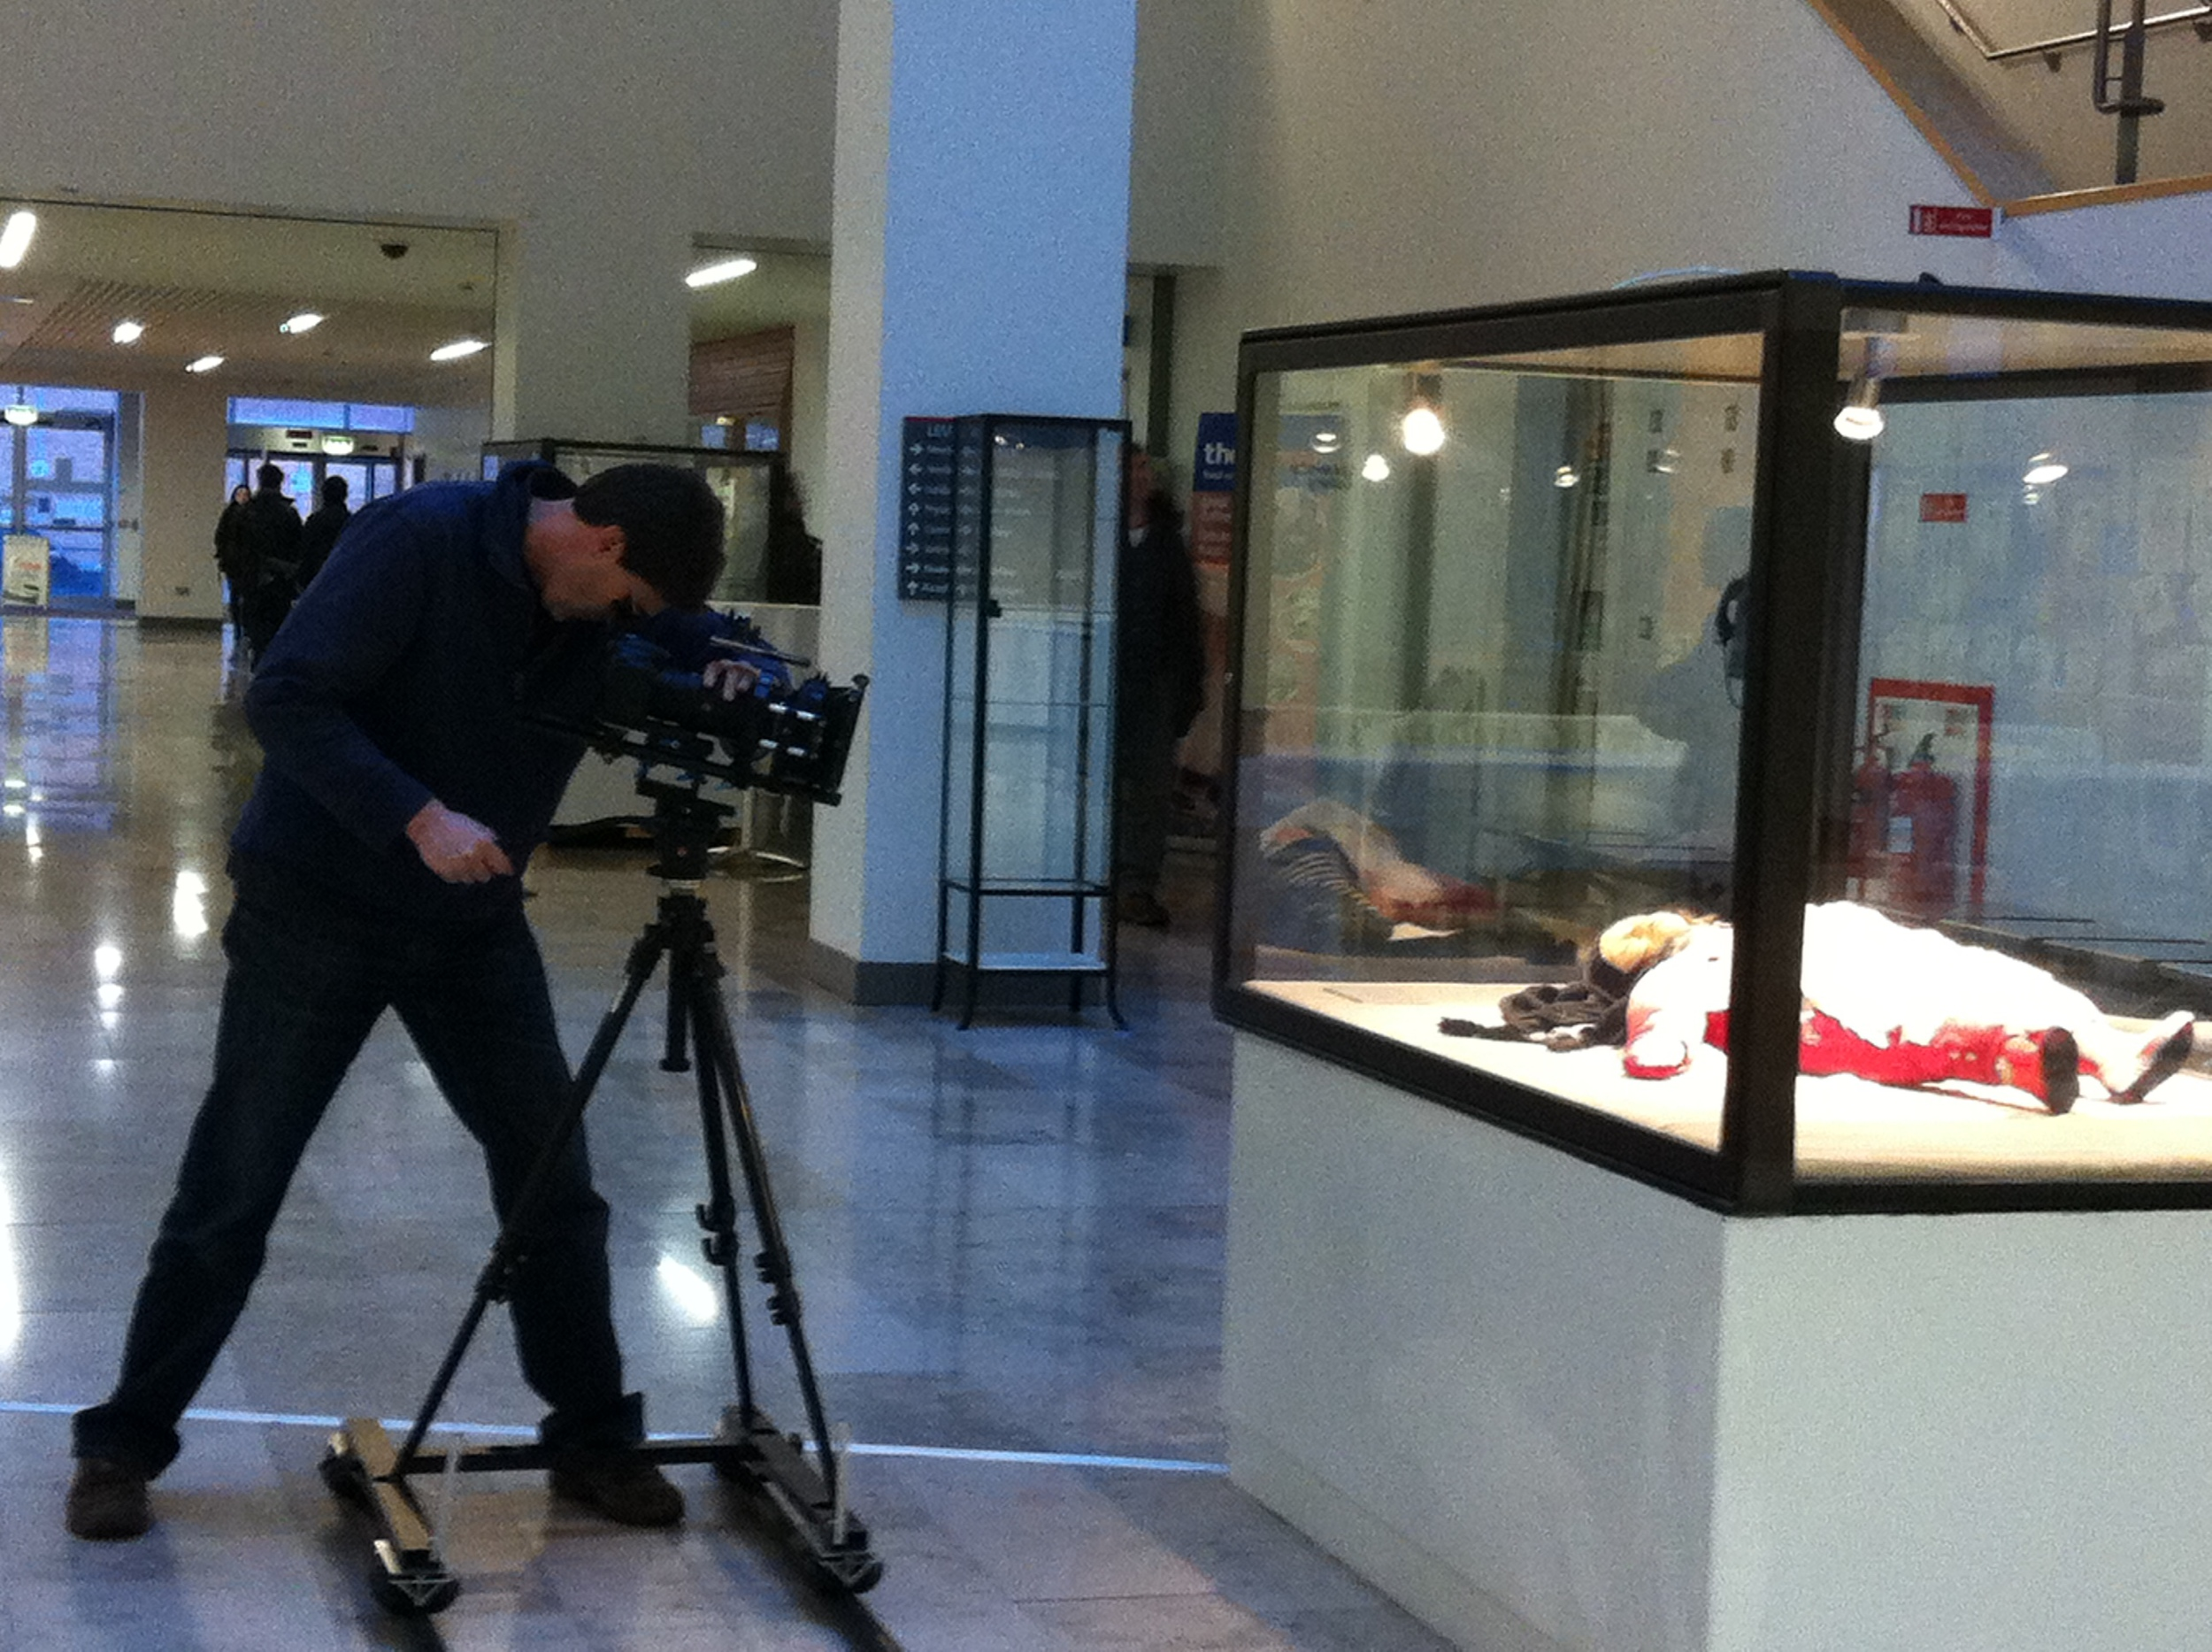 Filming of the video.